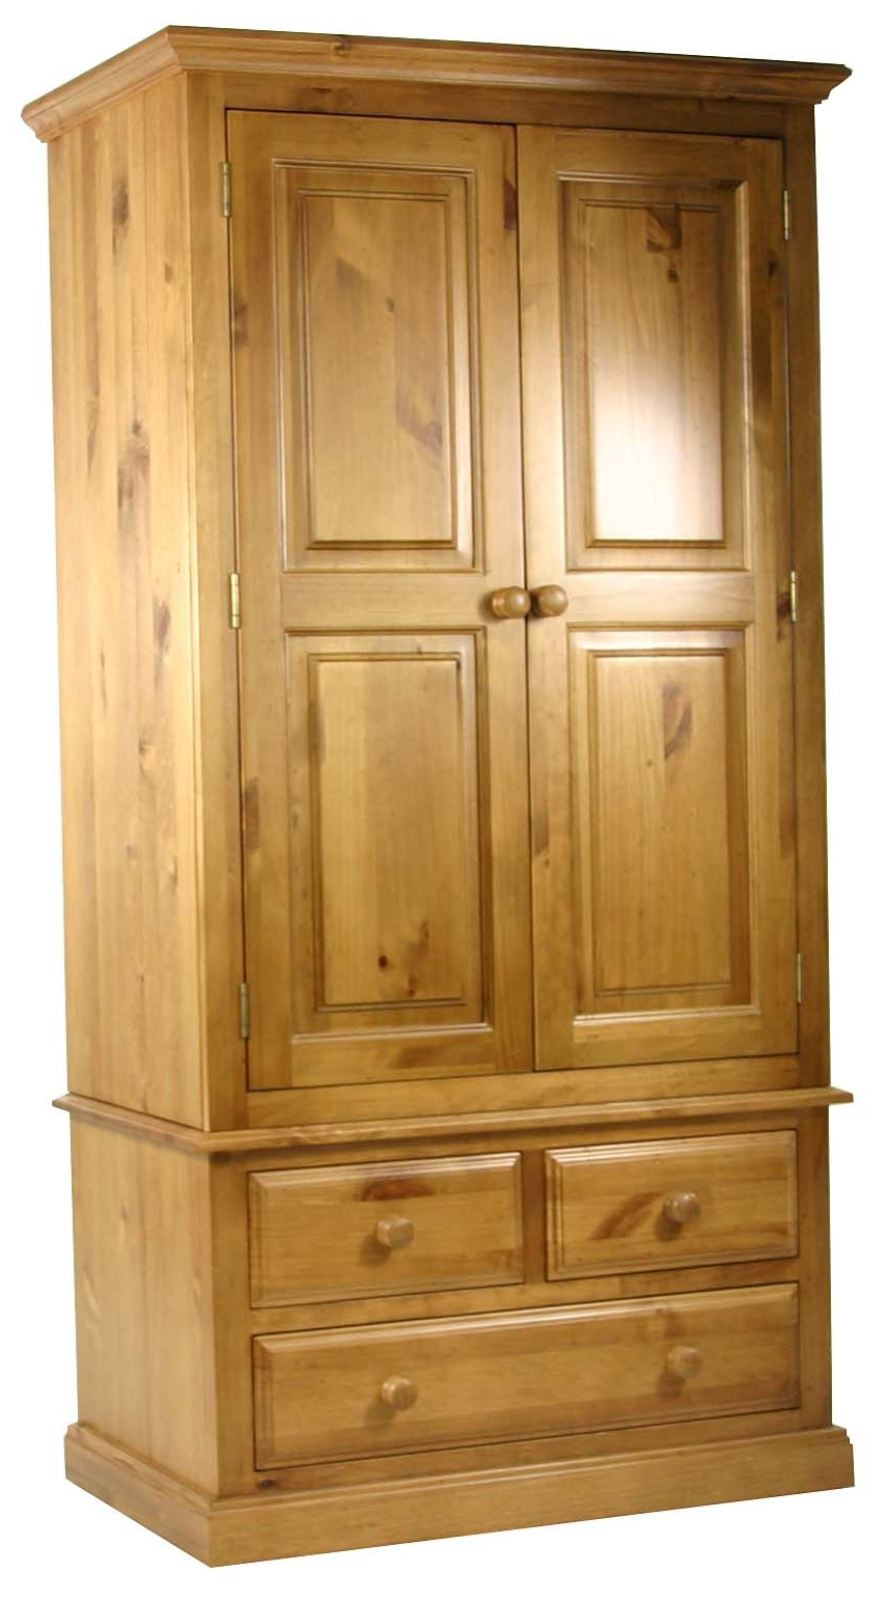 Primrose solid pine bedroom furniture double wardrobe with storage drawers ebay for Bedroom set with storage drawers